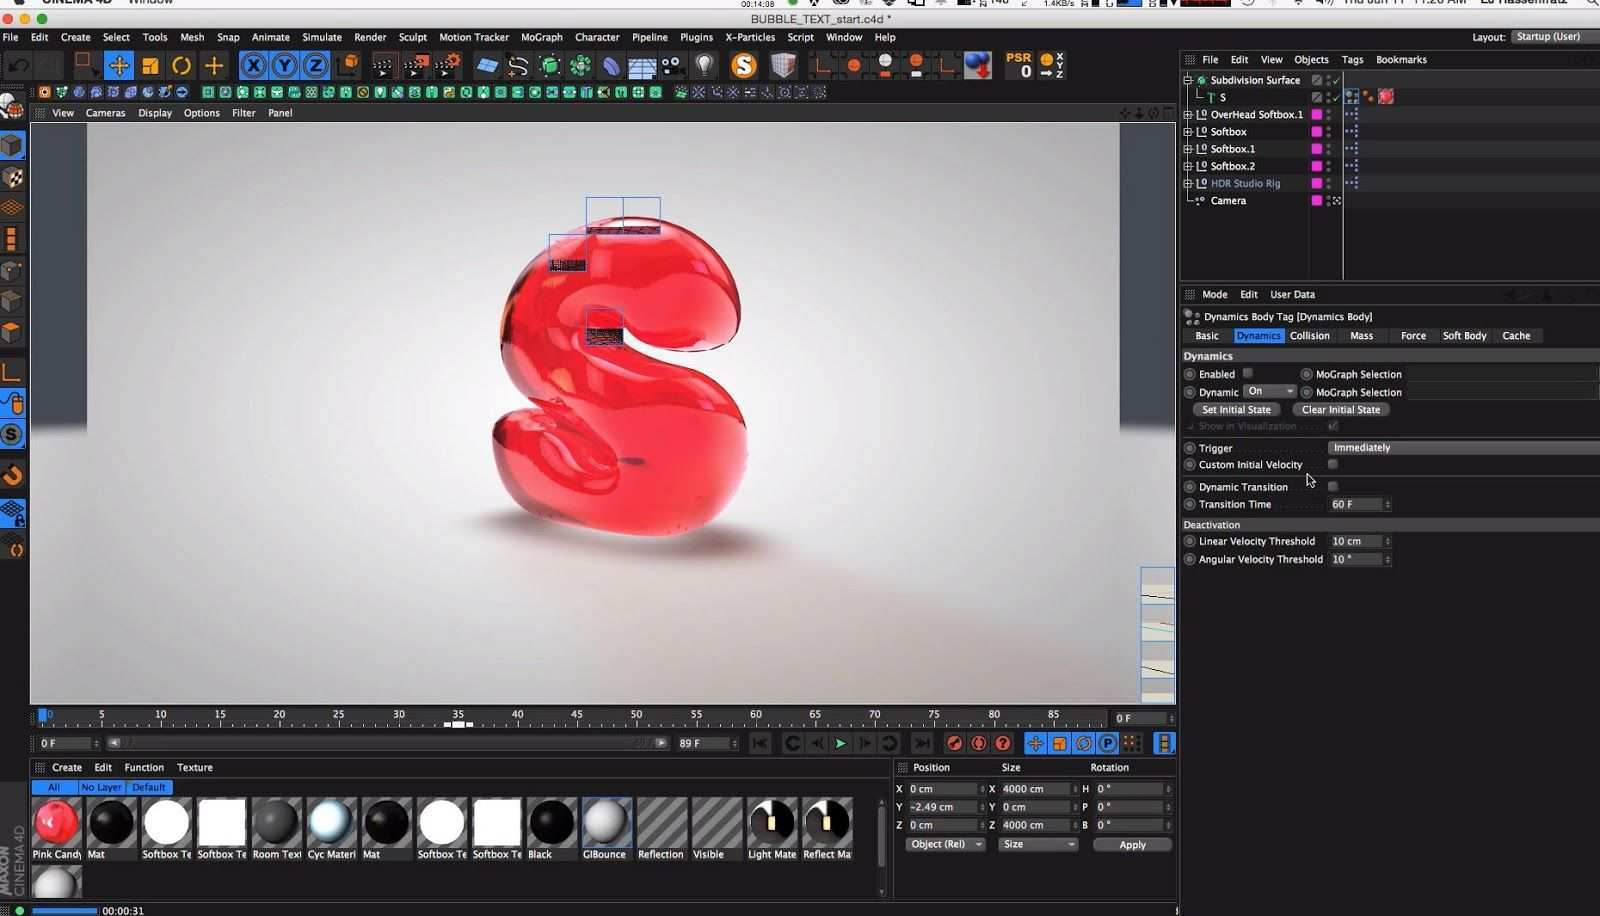 Creating Bubble Text In Cinema 4d Cg Tutorials Library Cinema 4d Cinema 4d Tutorial Cinema 4d Materials